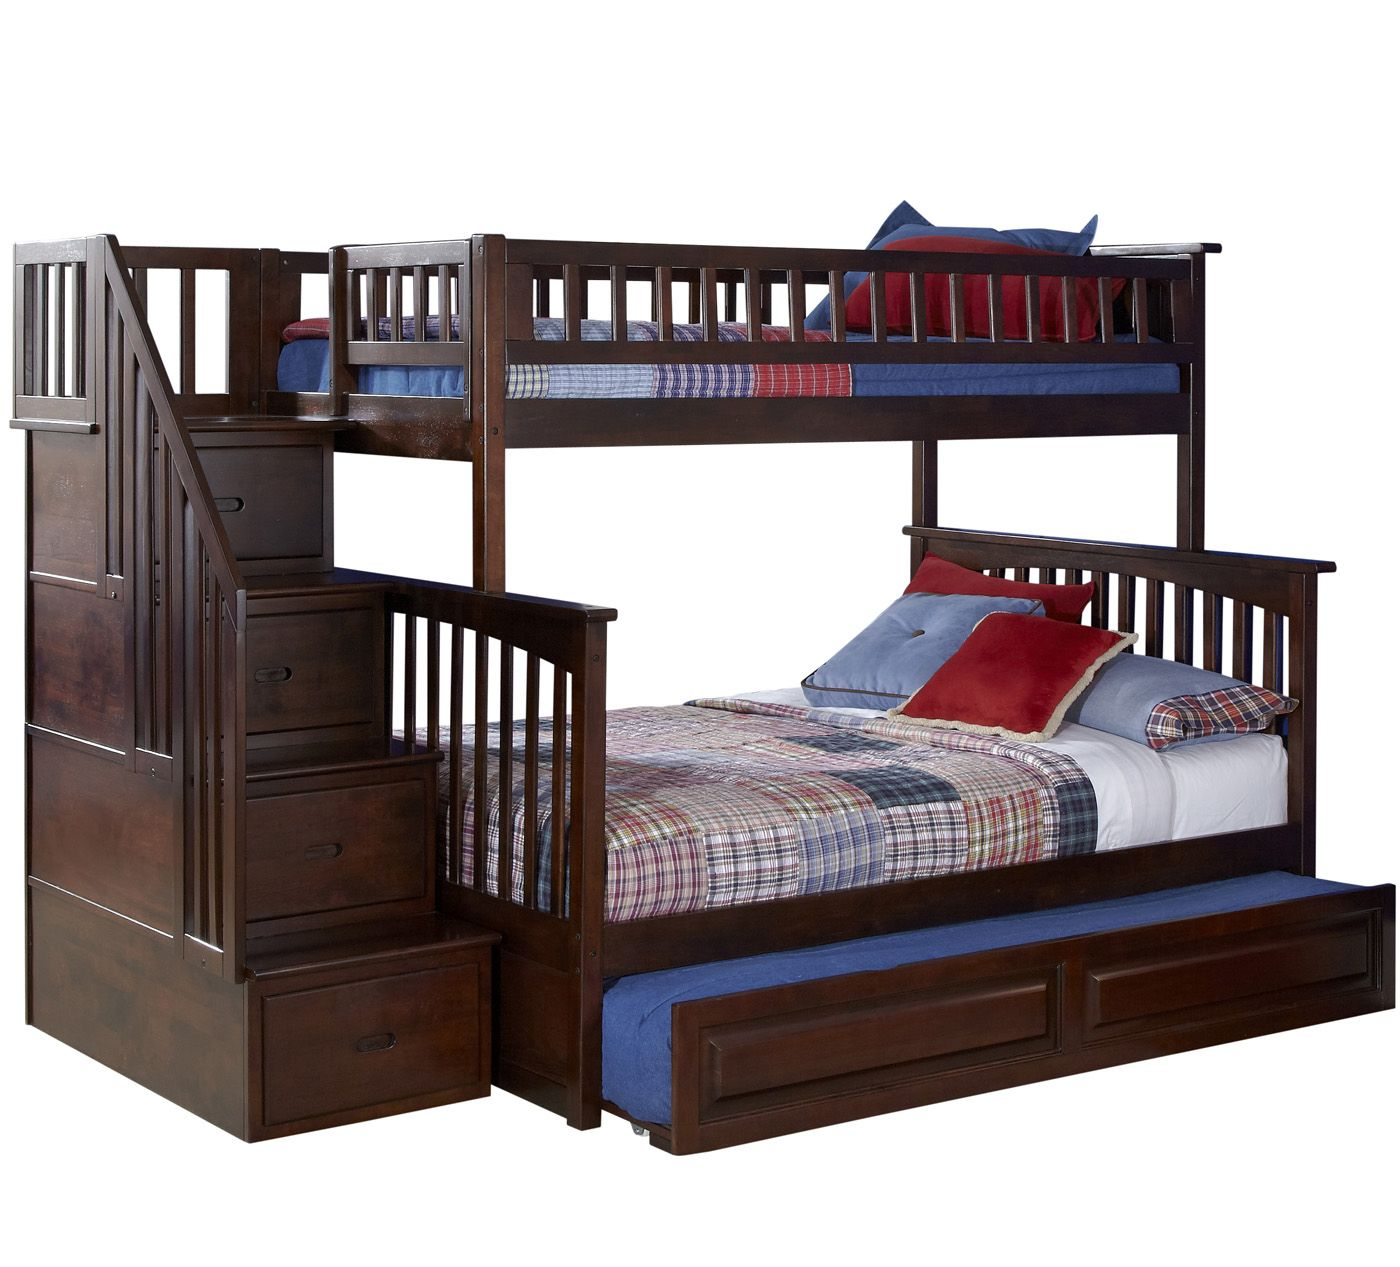 Loft bed with storage stairs  Staircase Bunk Bed Twin With Drawers And Pillow  Bunk Bed